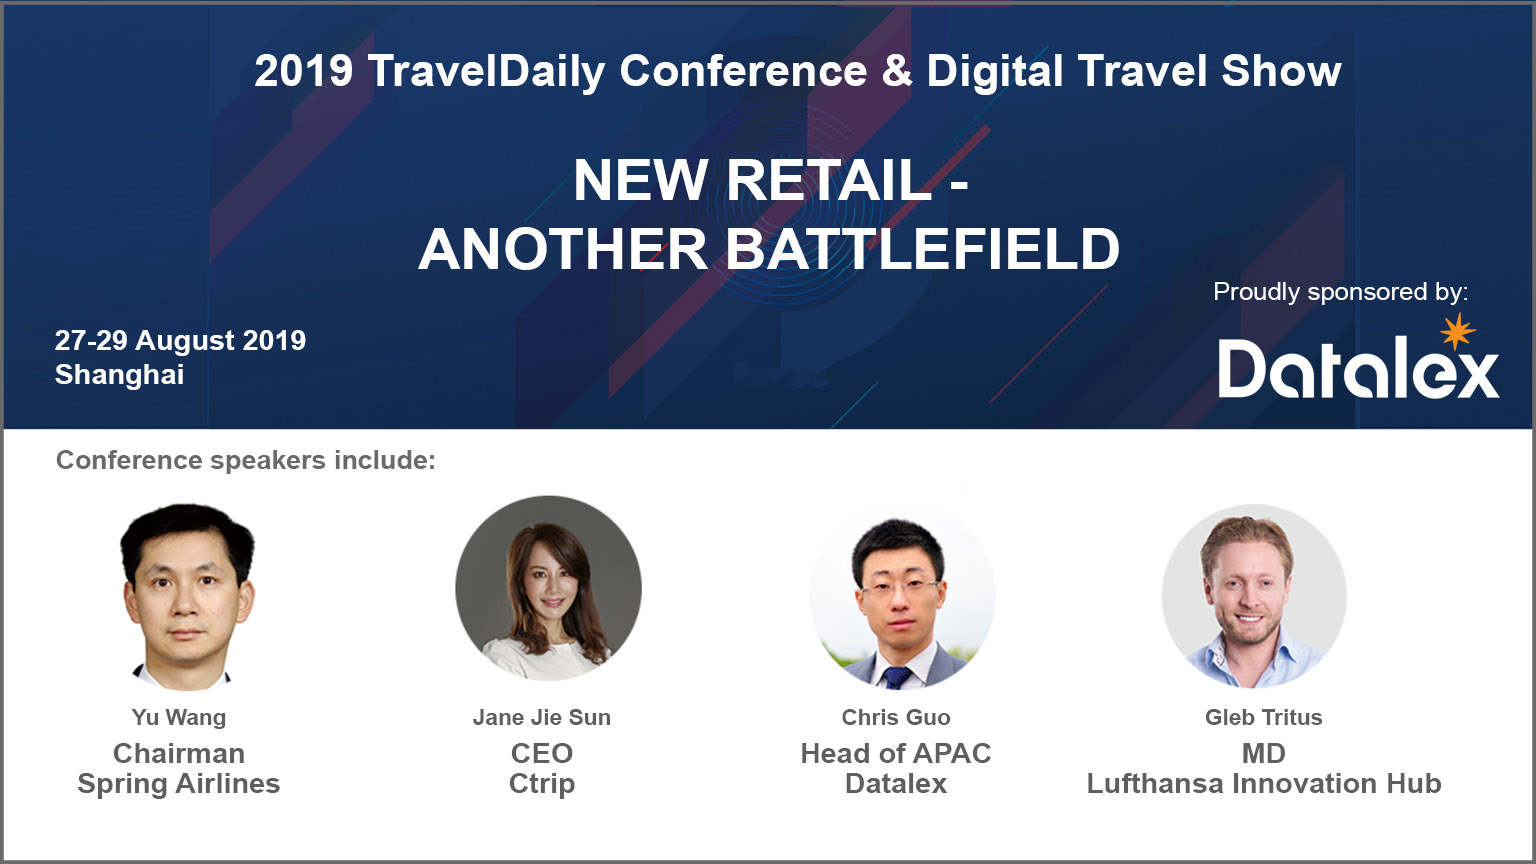 New Retail - Another Battlefield: Identifying Trends & New Retail Opportunities